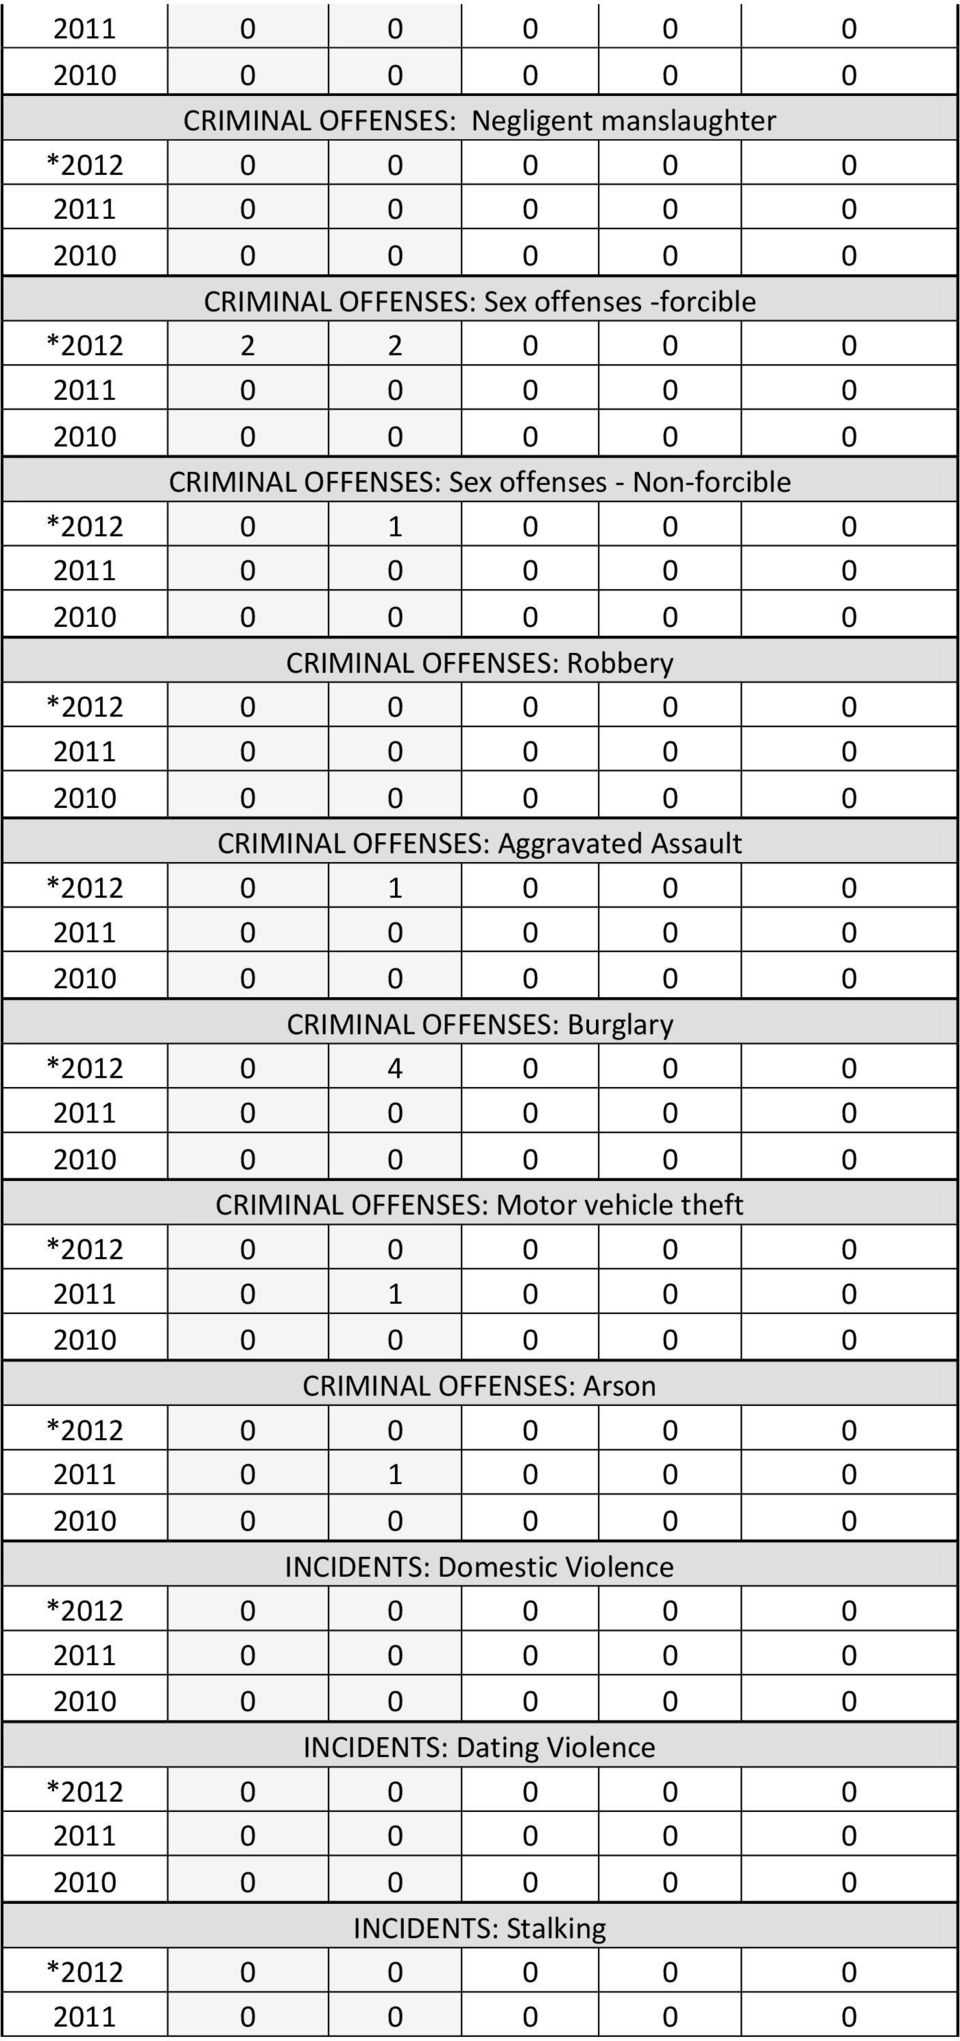 Assault *2012 0 1 0 0 0 CRIMINAL OFFENSES: Burglary *2012 0 4 0 0 0 CRIMINAL OFFENSES: Motor vehicle theft 2011 0